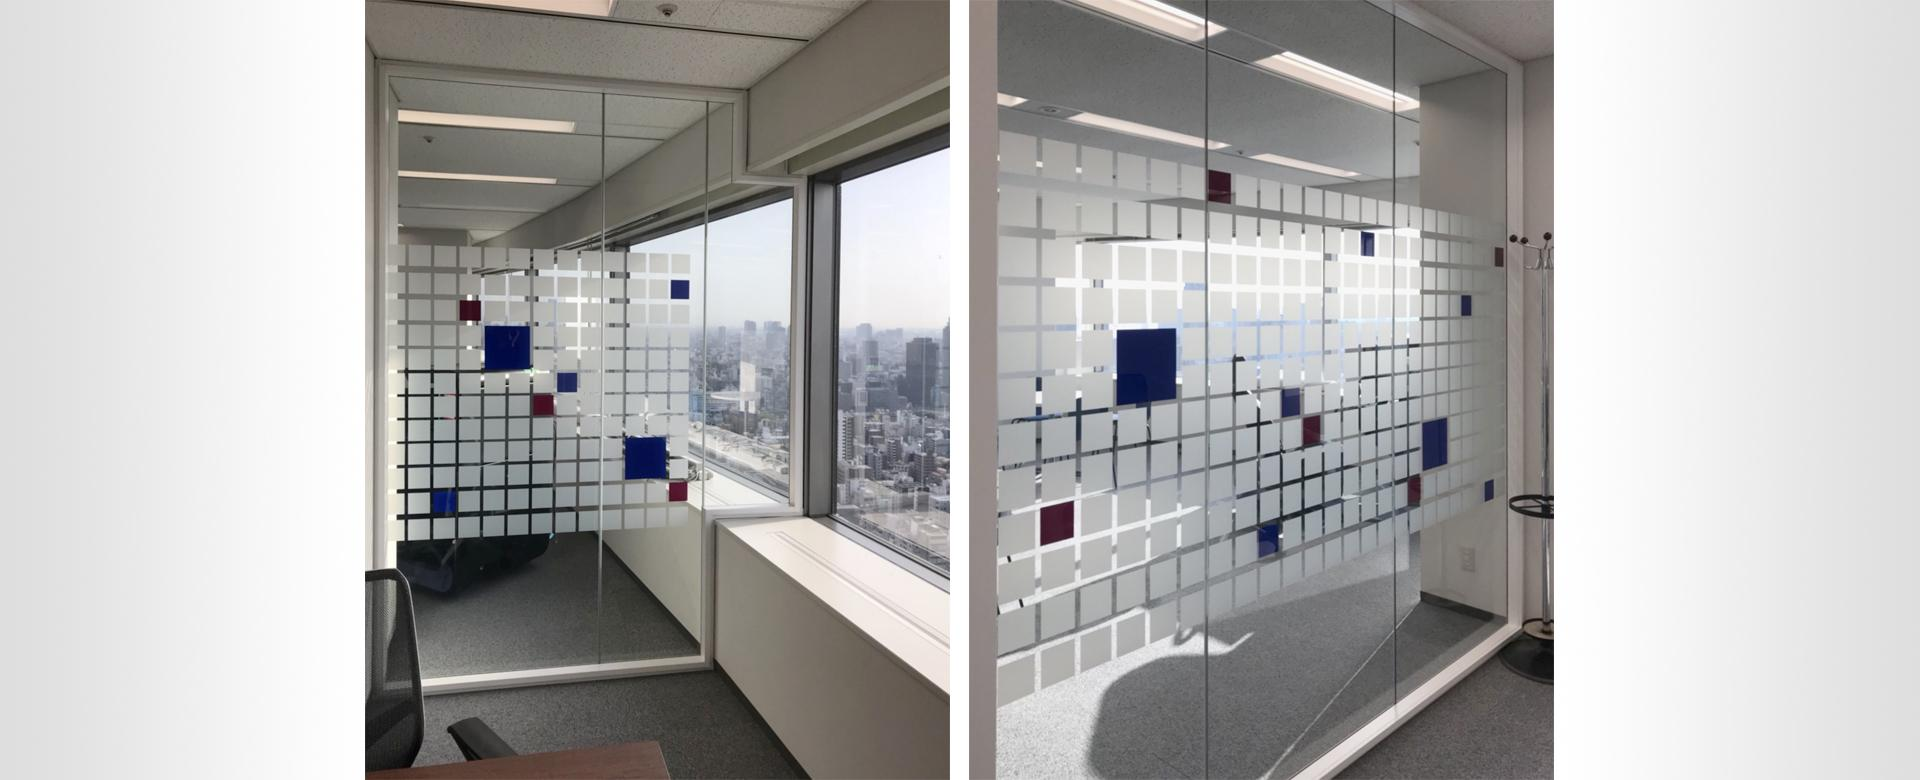 Offset single glazing frosted film